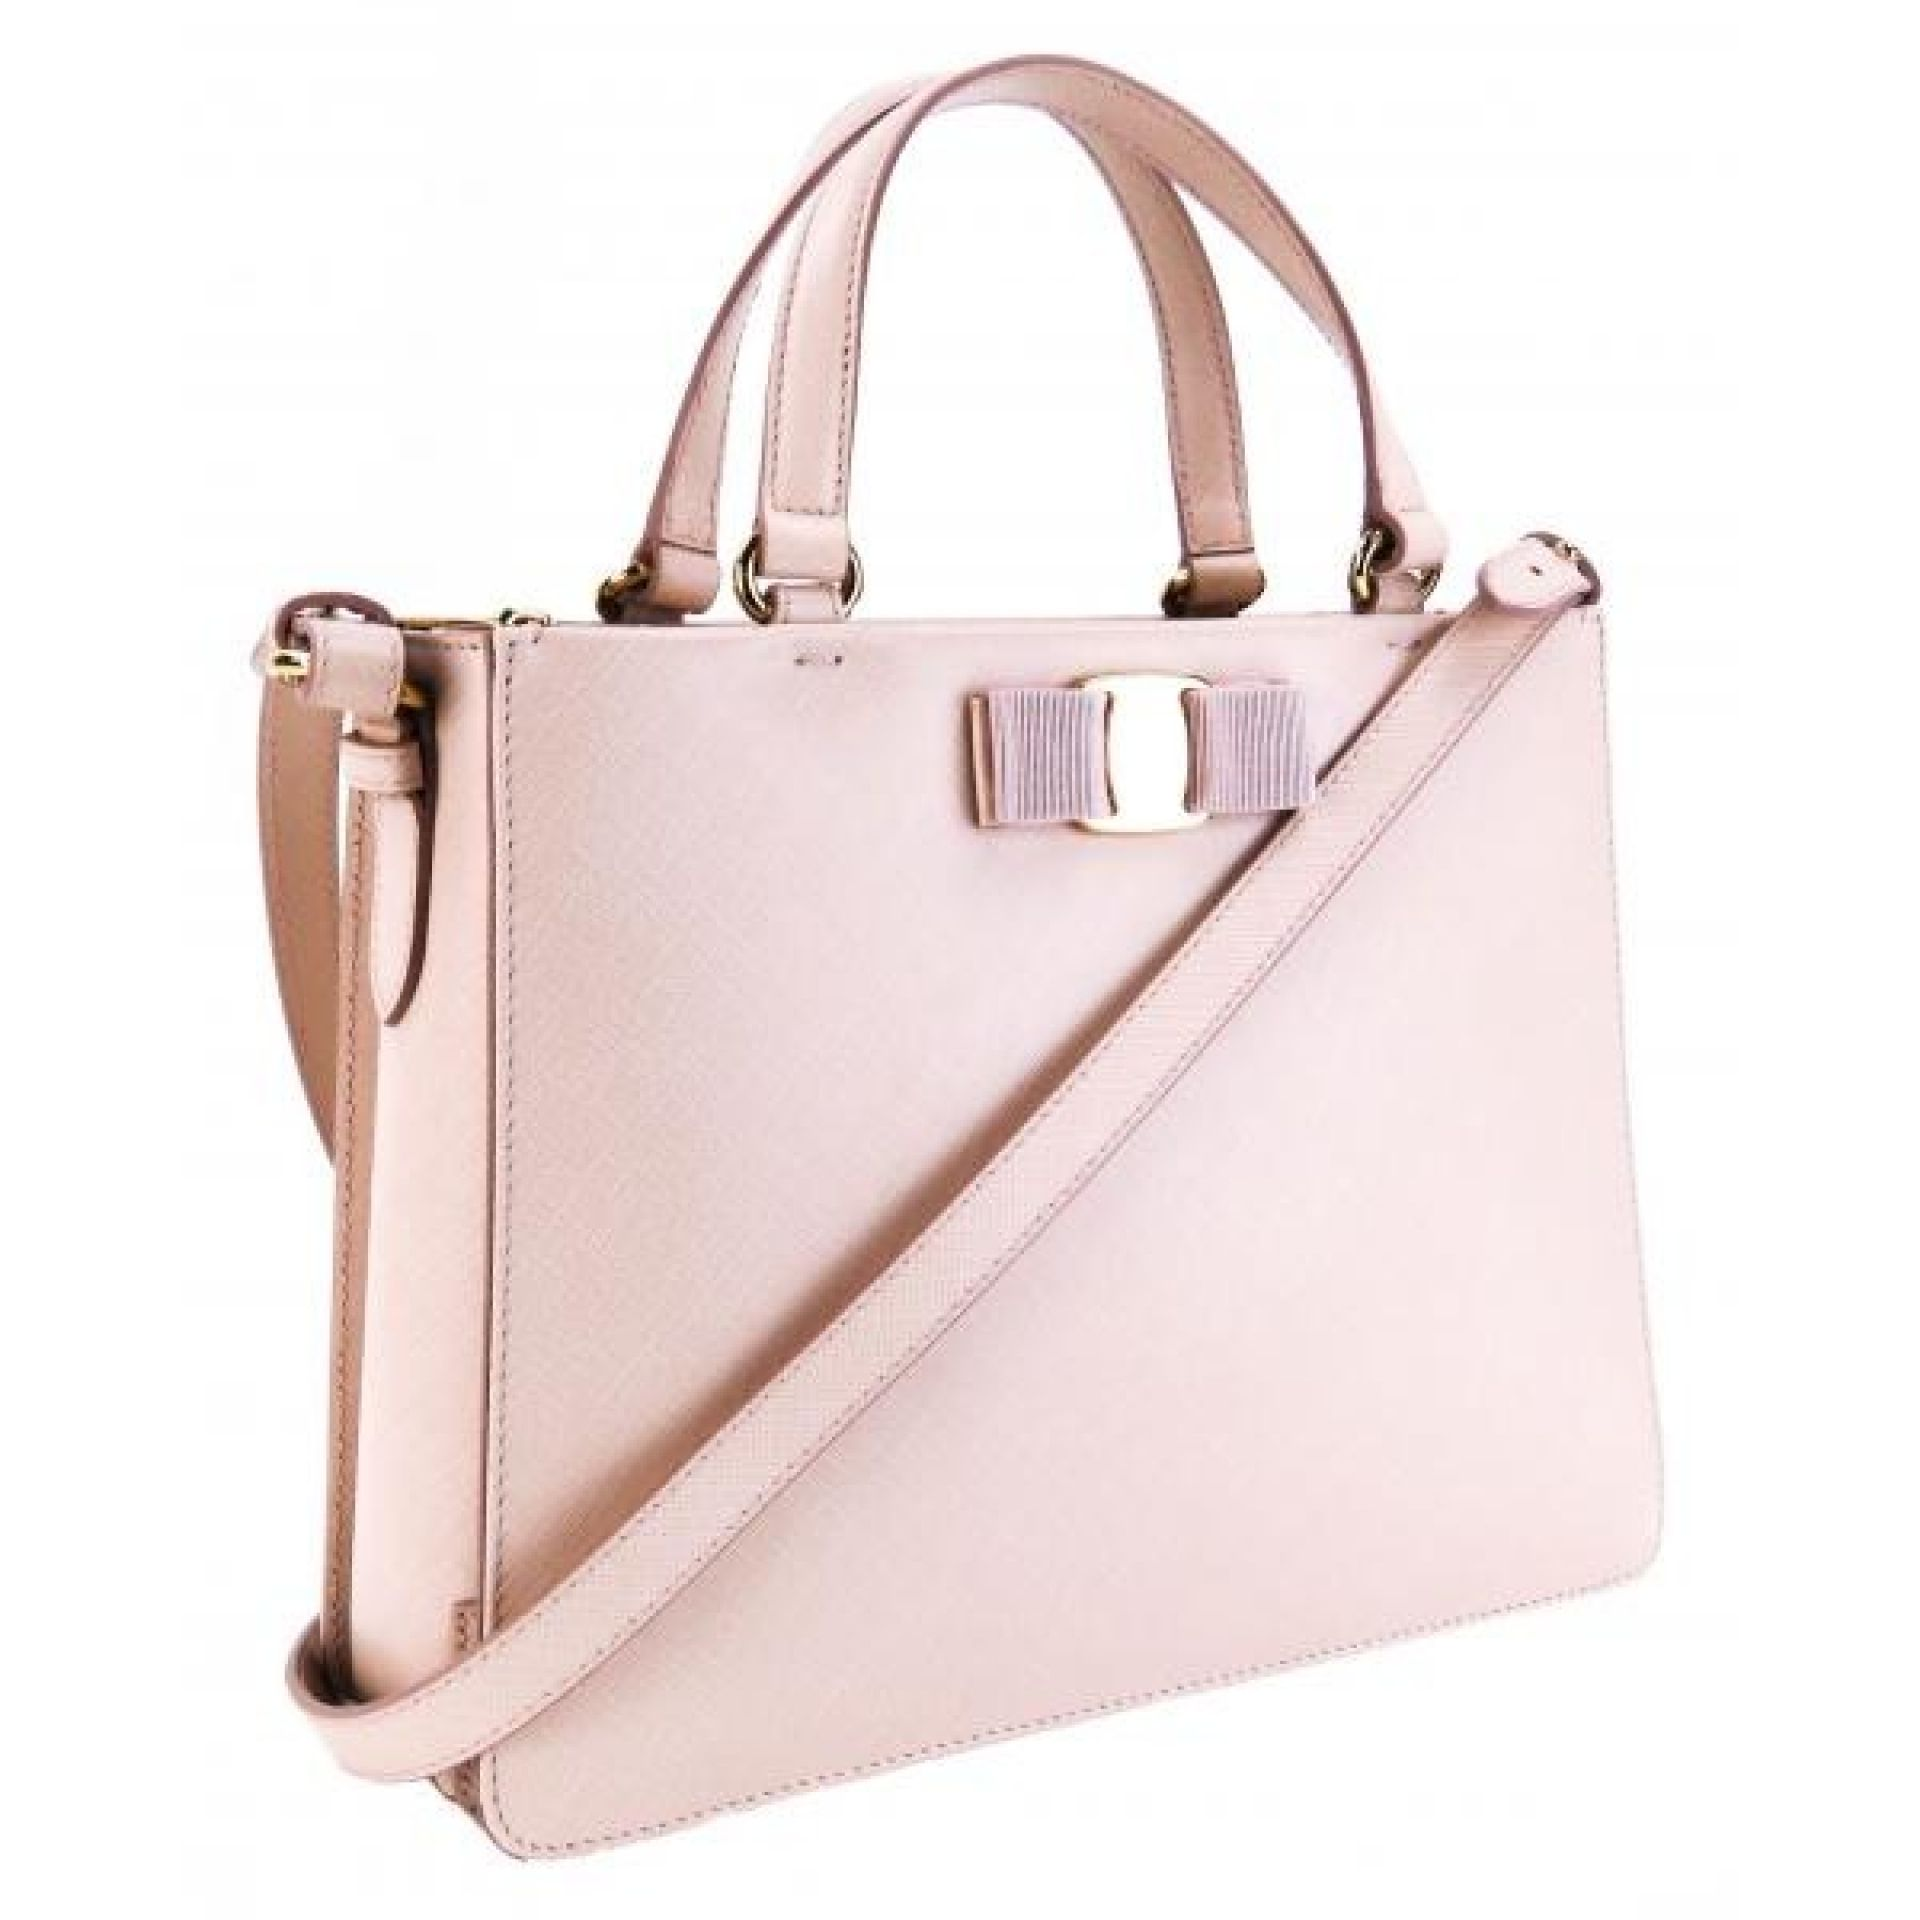 Salvatore Ferragamo Light Pink Saffiano Leather Tracy Classic Vara Bow Satchel B